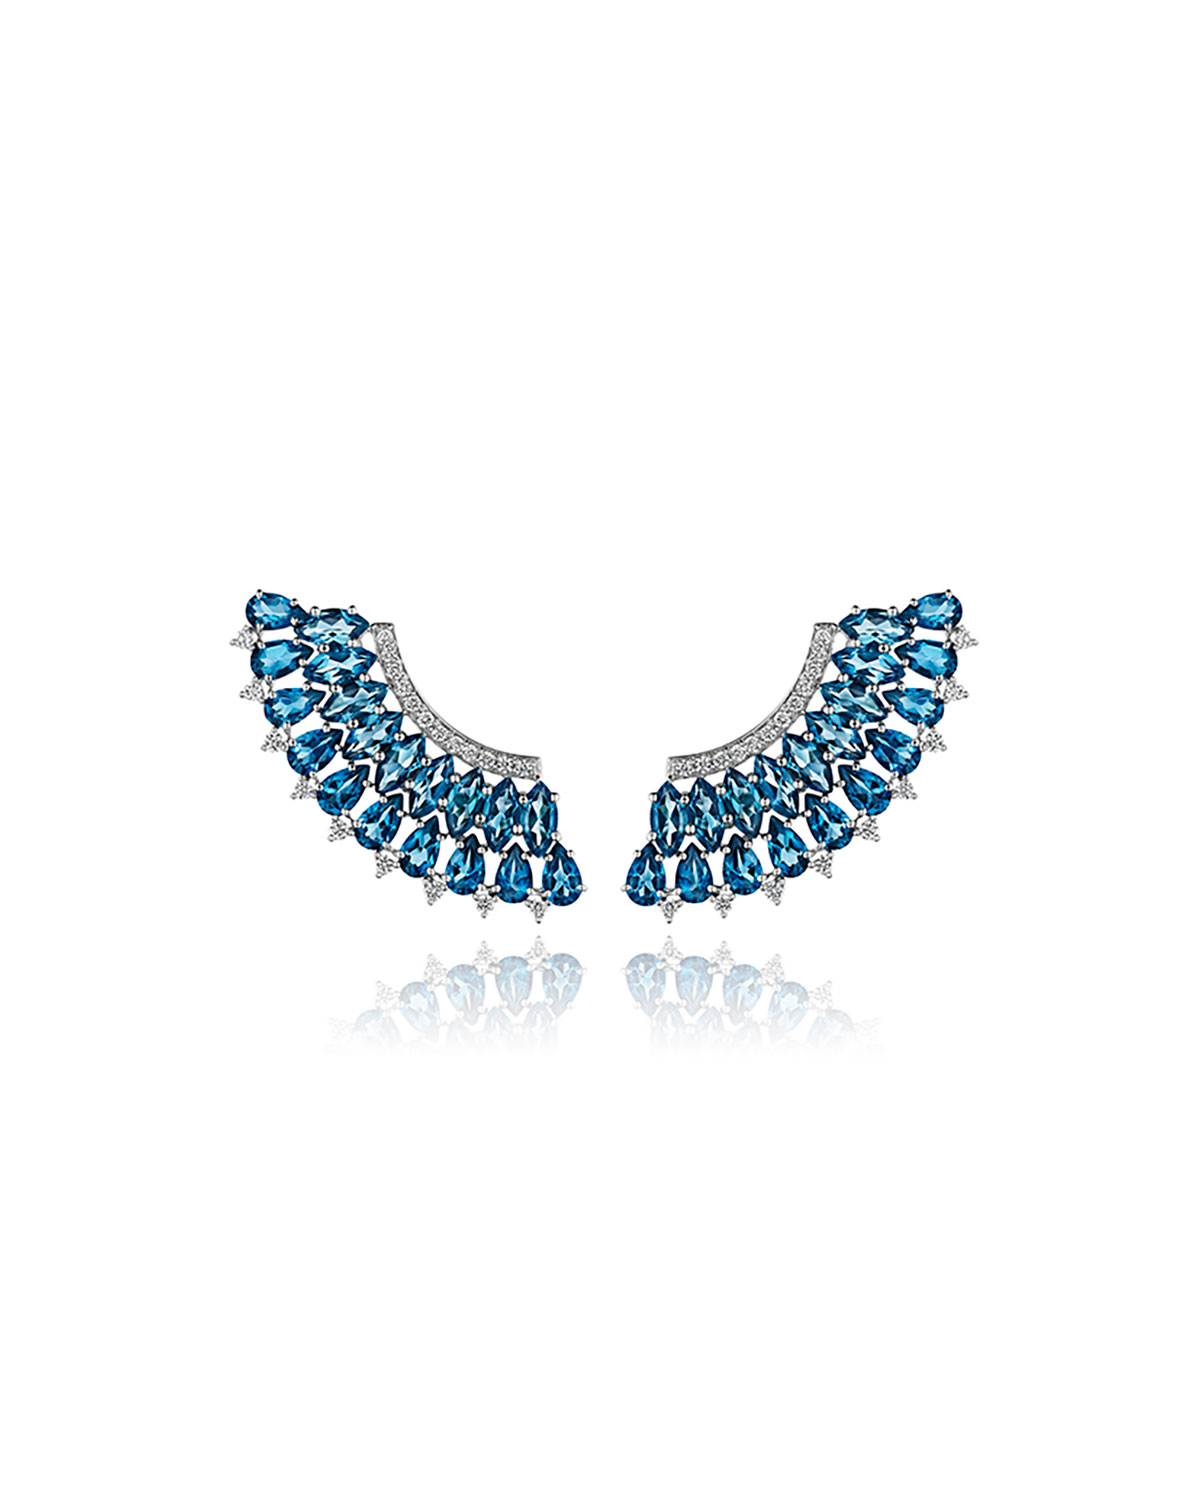 Mirage 18k White Gold Blue Topaz and Diamond Pave Earrings